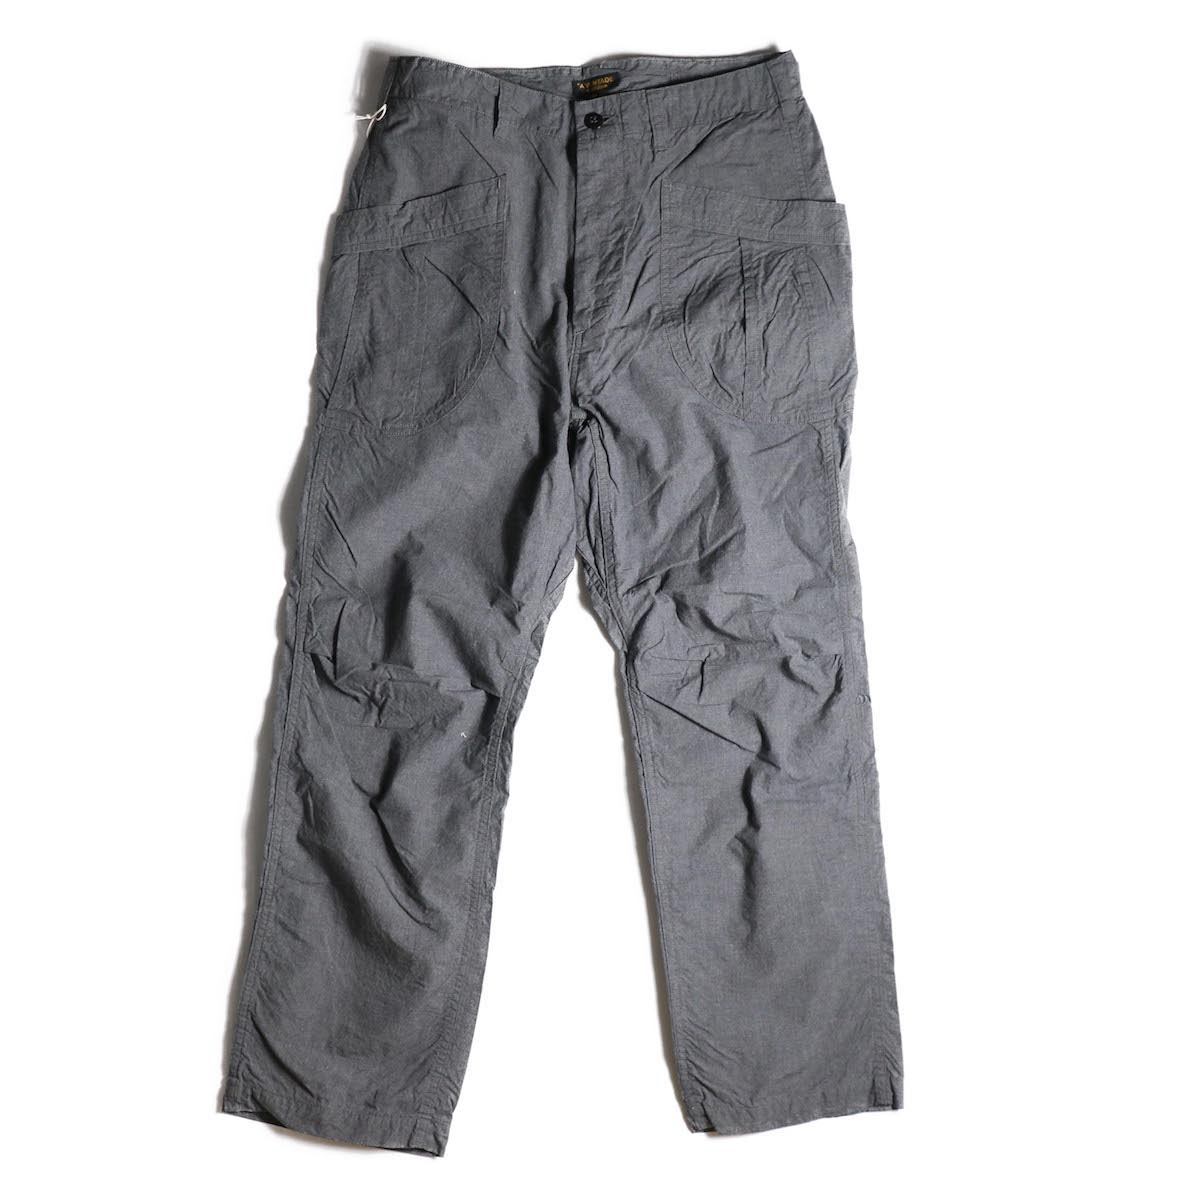 A VONTADE / Fatigue Trousers -MID GREY TOP